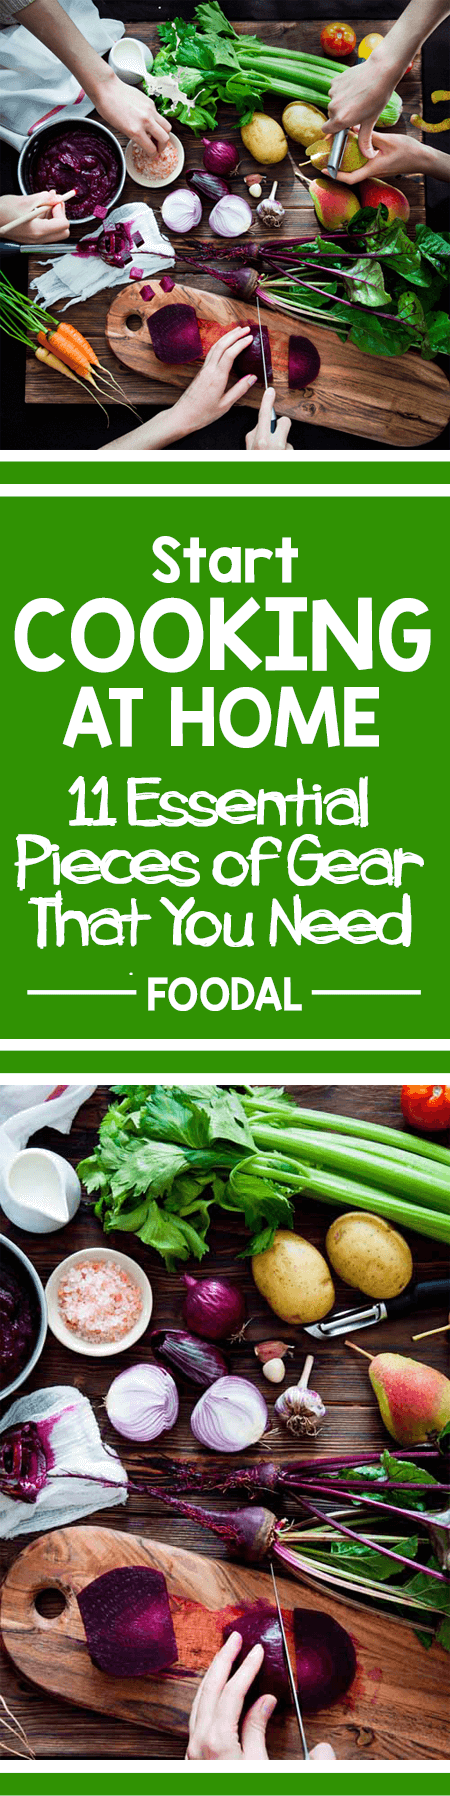 If you're looking to start cooking at home, here's a list of 11 essential pieces you'll need to get started – ones that'll make cooking easier and more fun! Buying a set of utensils and equipment to start with will help you to enjoy more success in the kitchen, and they don't have to be expensive. Later, as you gain experience (and as your budget allows), you can build on your starter set to suit your needs. http://foodal.com/kitchen/general-kitchenware/guides-general-kitchenware/essential-gear/